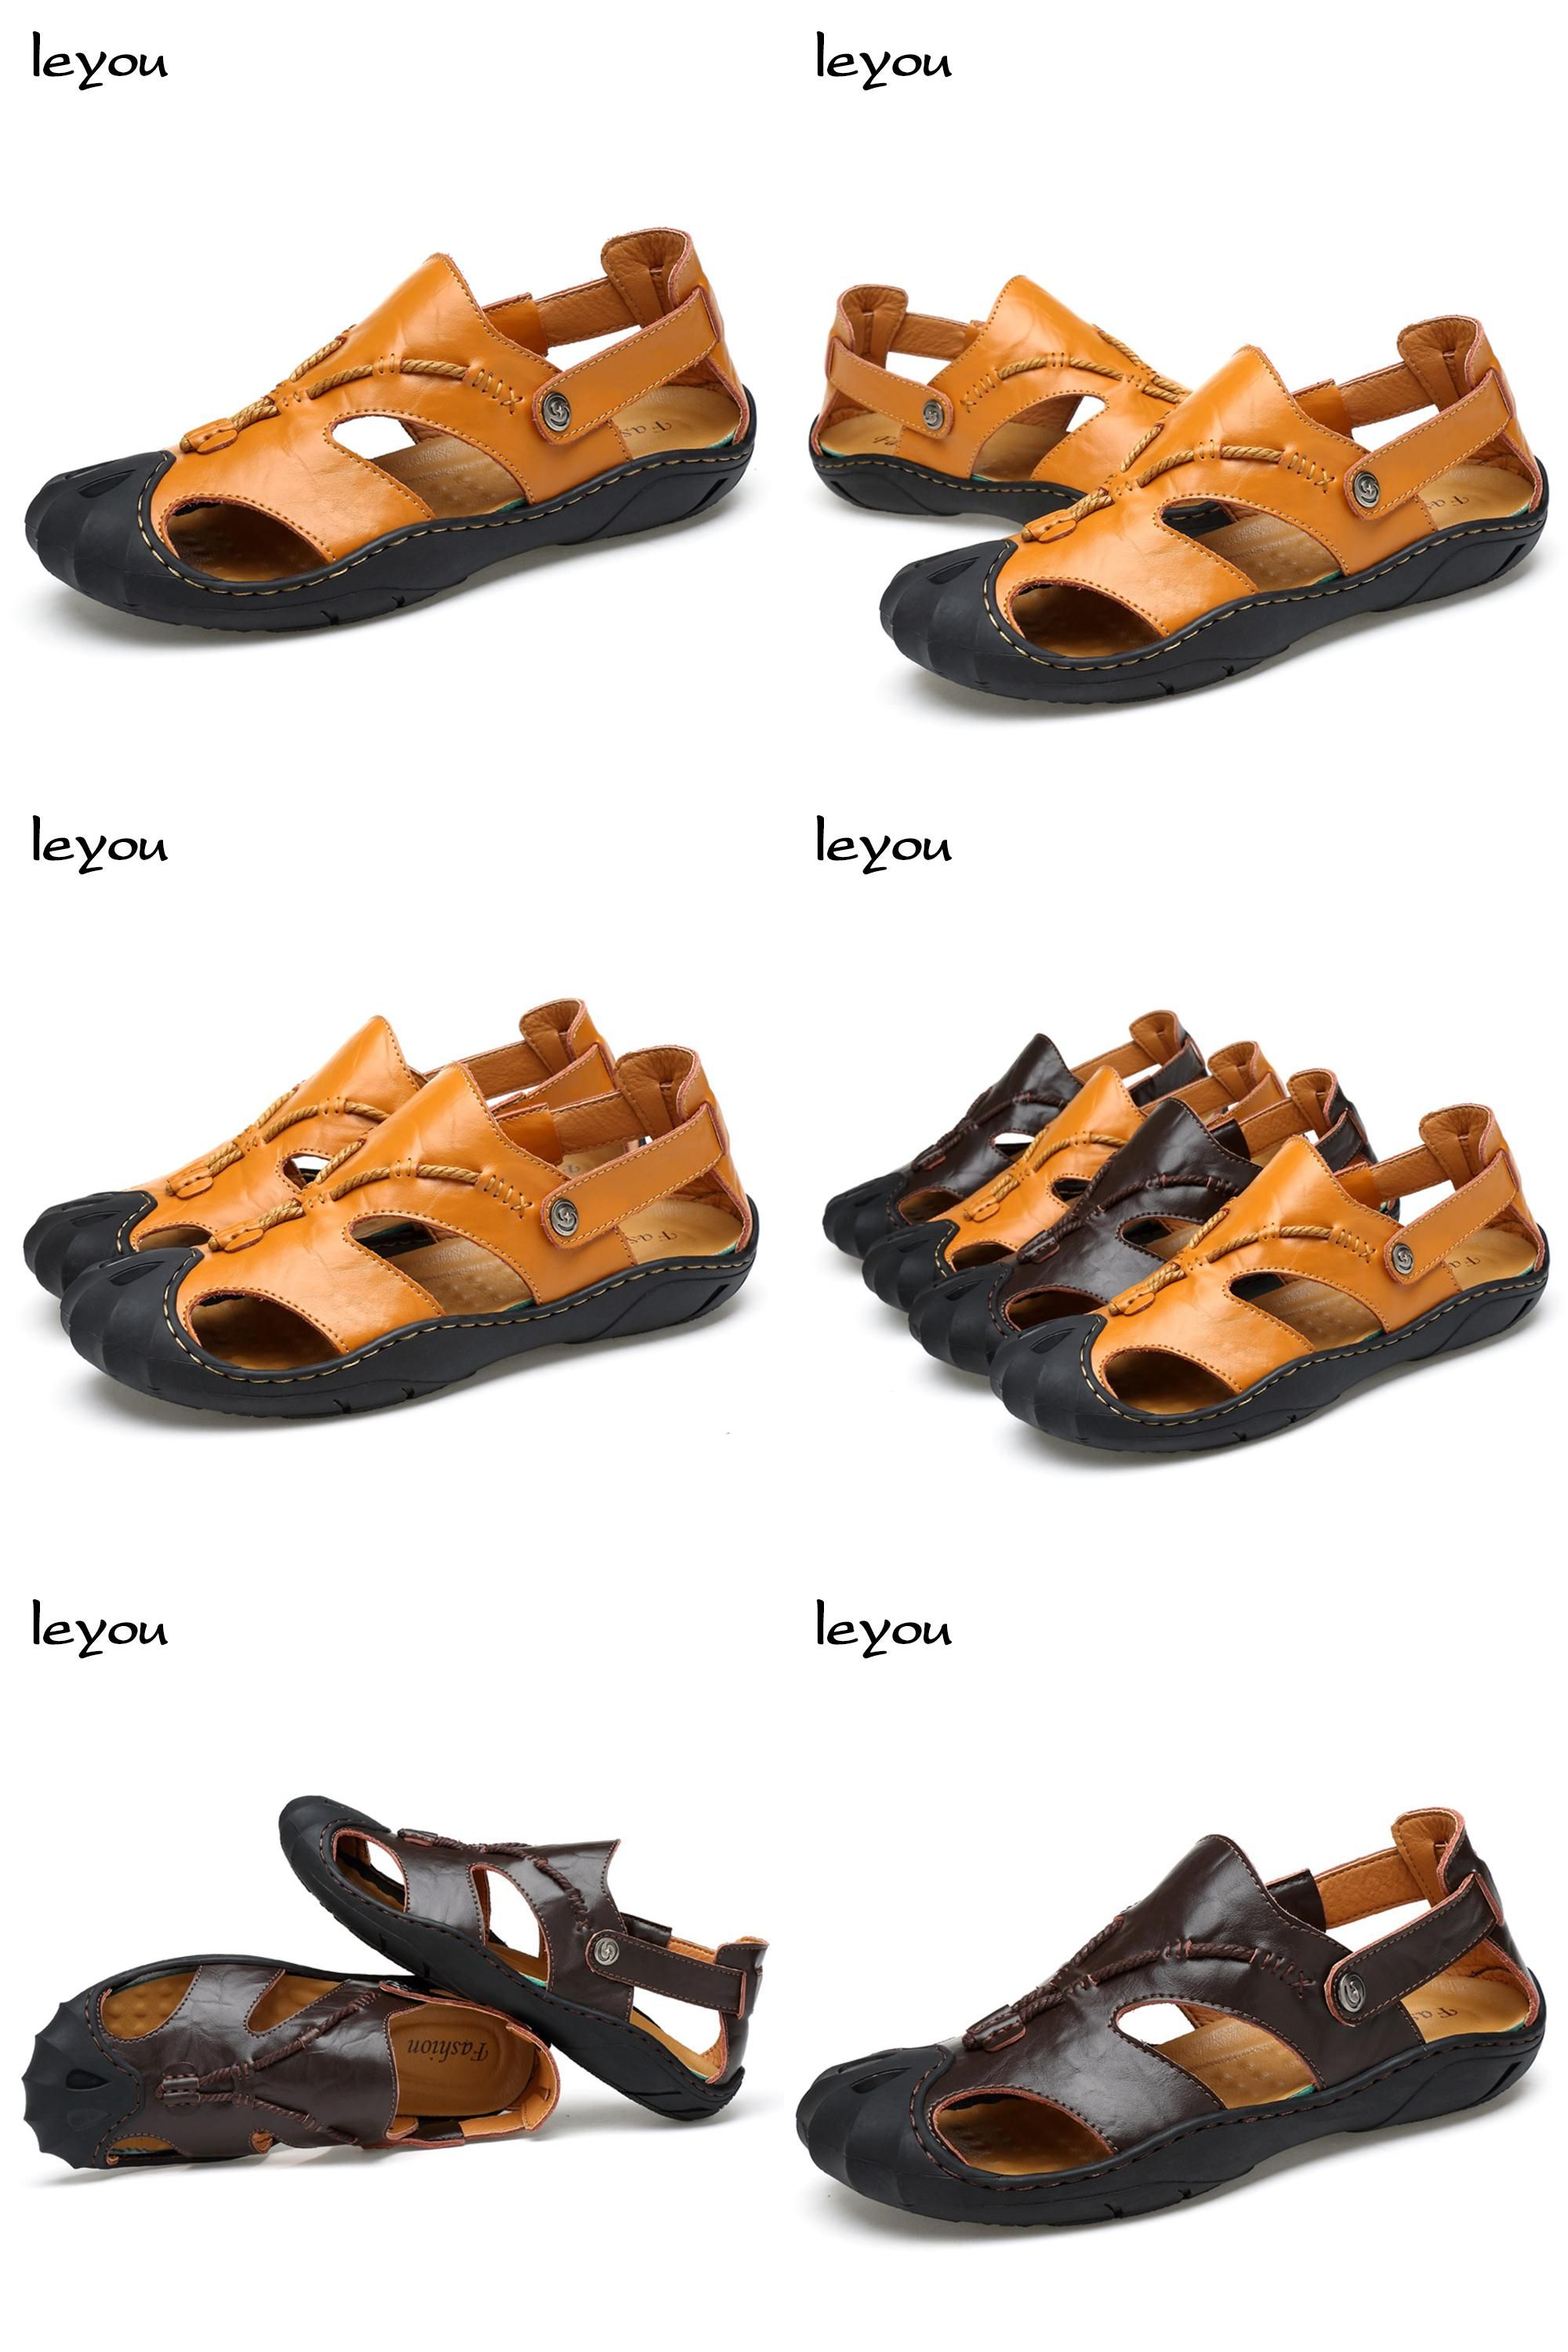 dba1a1592f41bd  Visit to Buy  Hot Sale Men New Real Leather Sandal Shoes Closed Toe Comfy